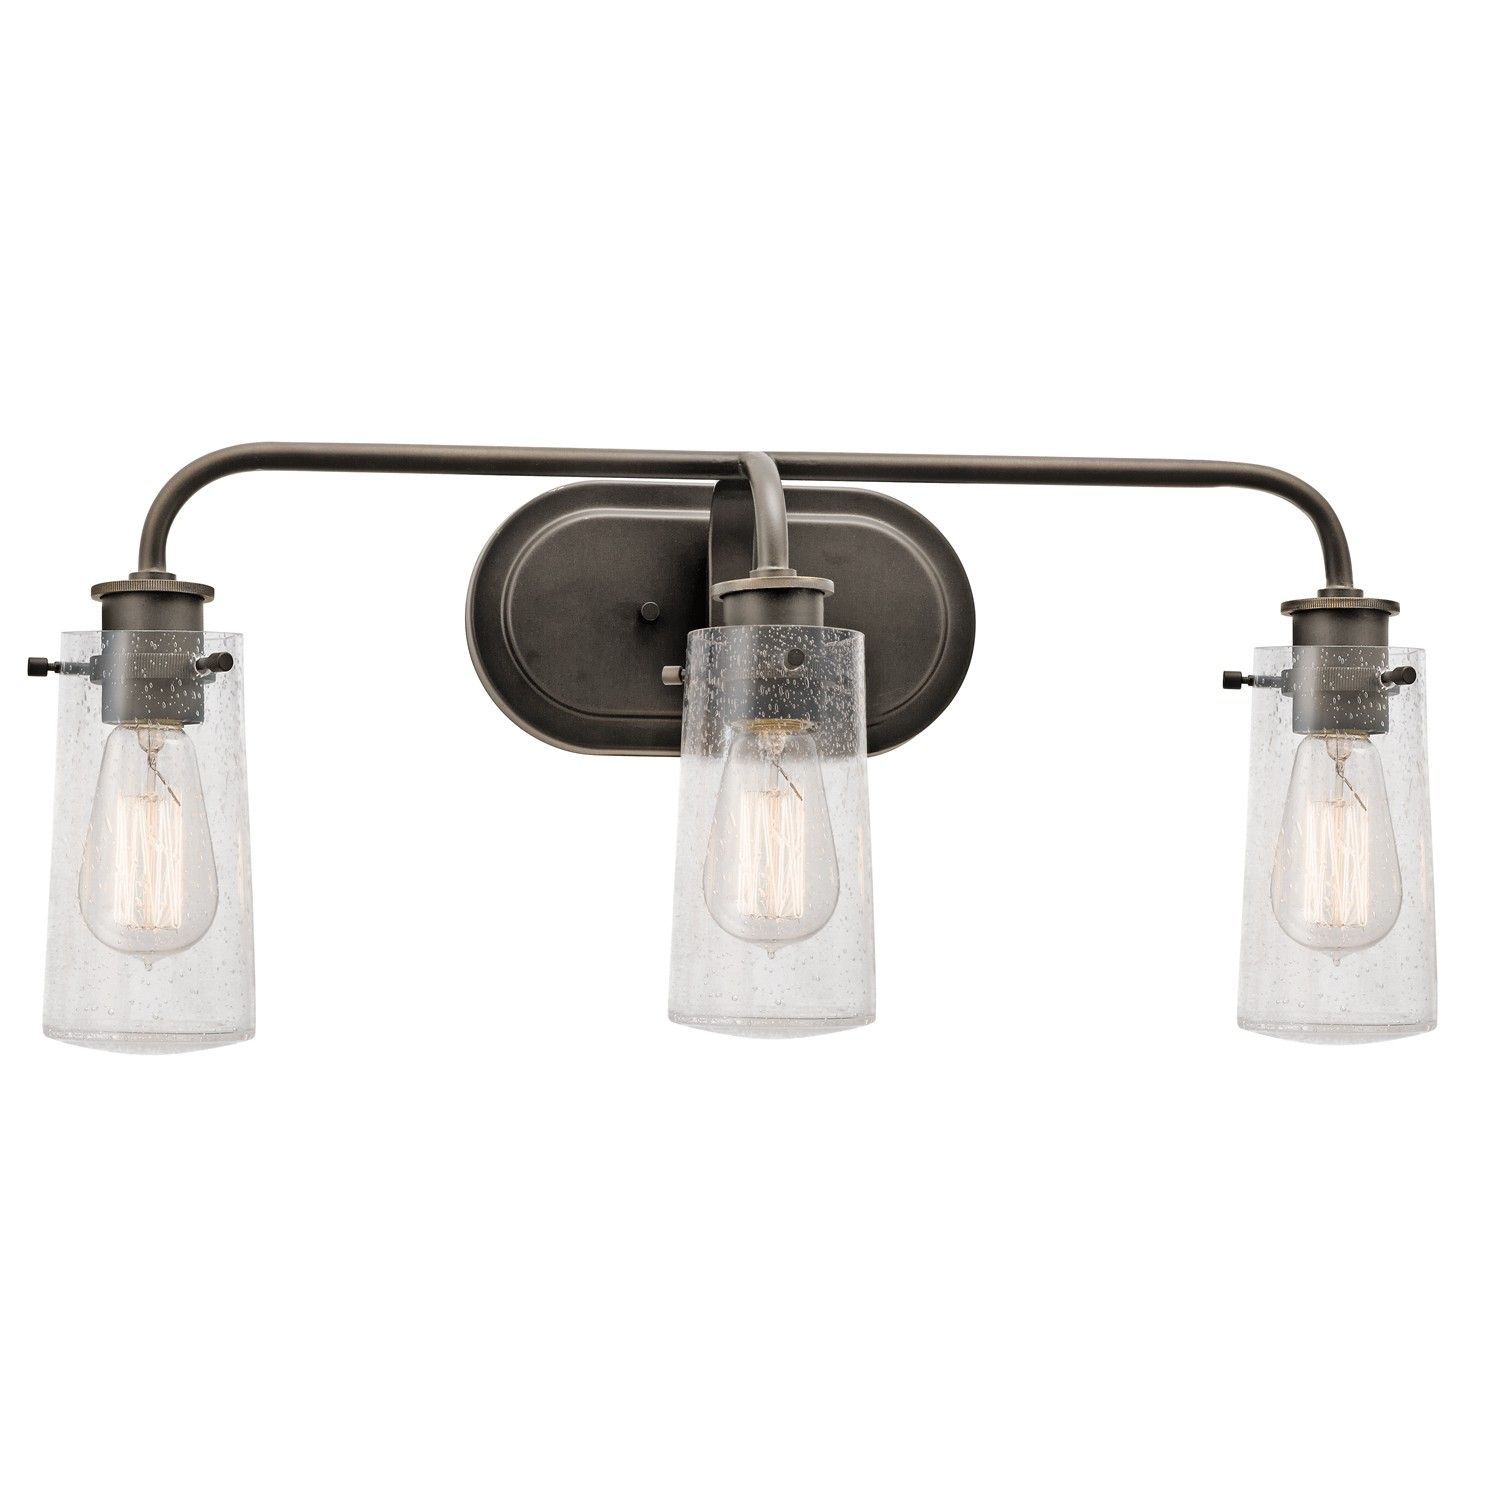 Three Light Wall Mount Bath Rustic Bathroom Vintage Bulbs Bronze